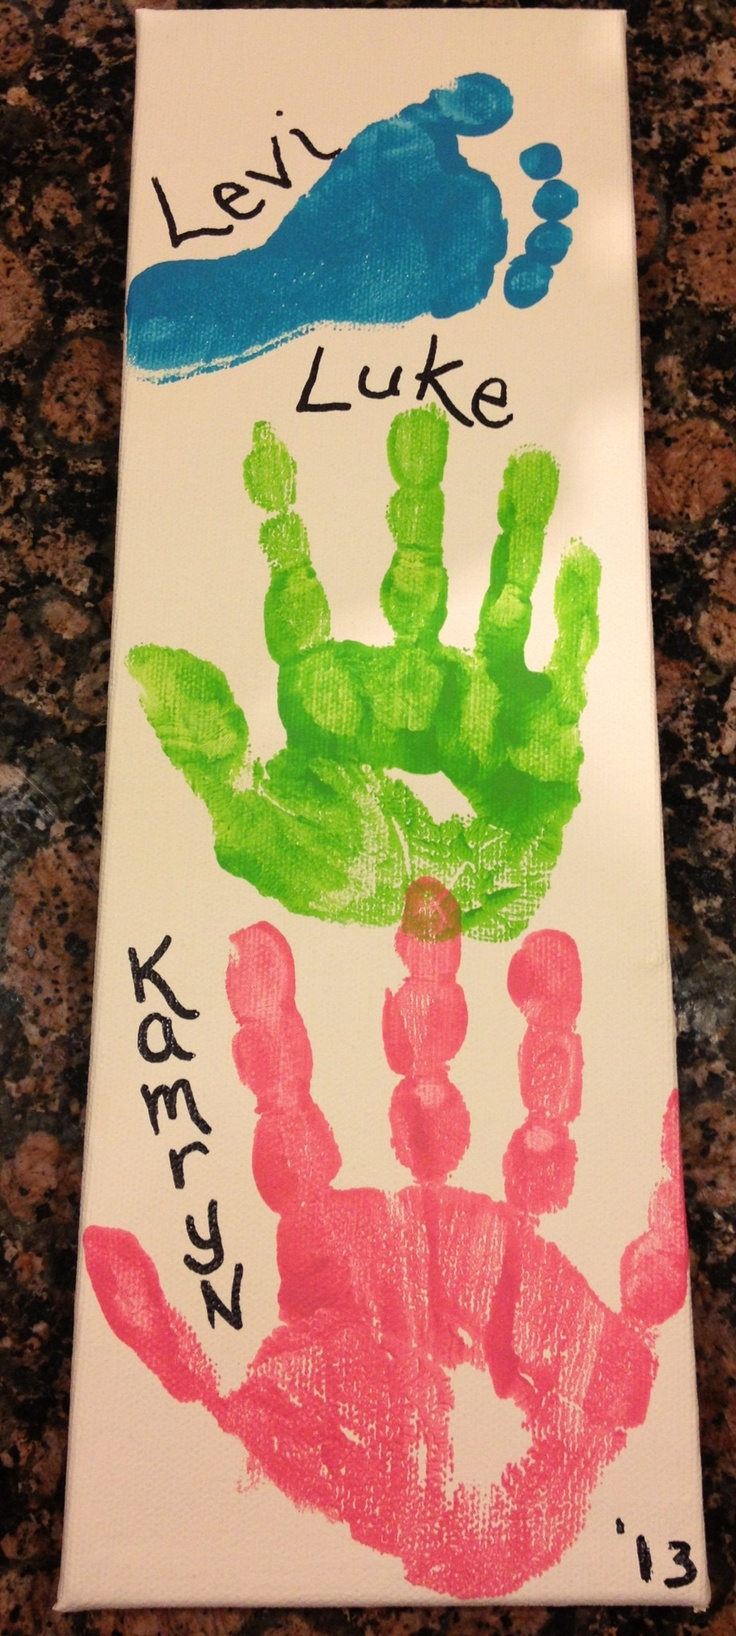 Father's Day gift OR kid memory arts  crafts project on canvas. Big kid hand prints  baby's footprint :)